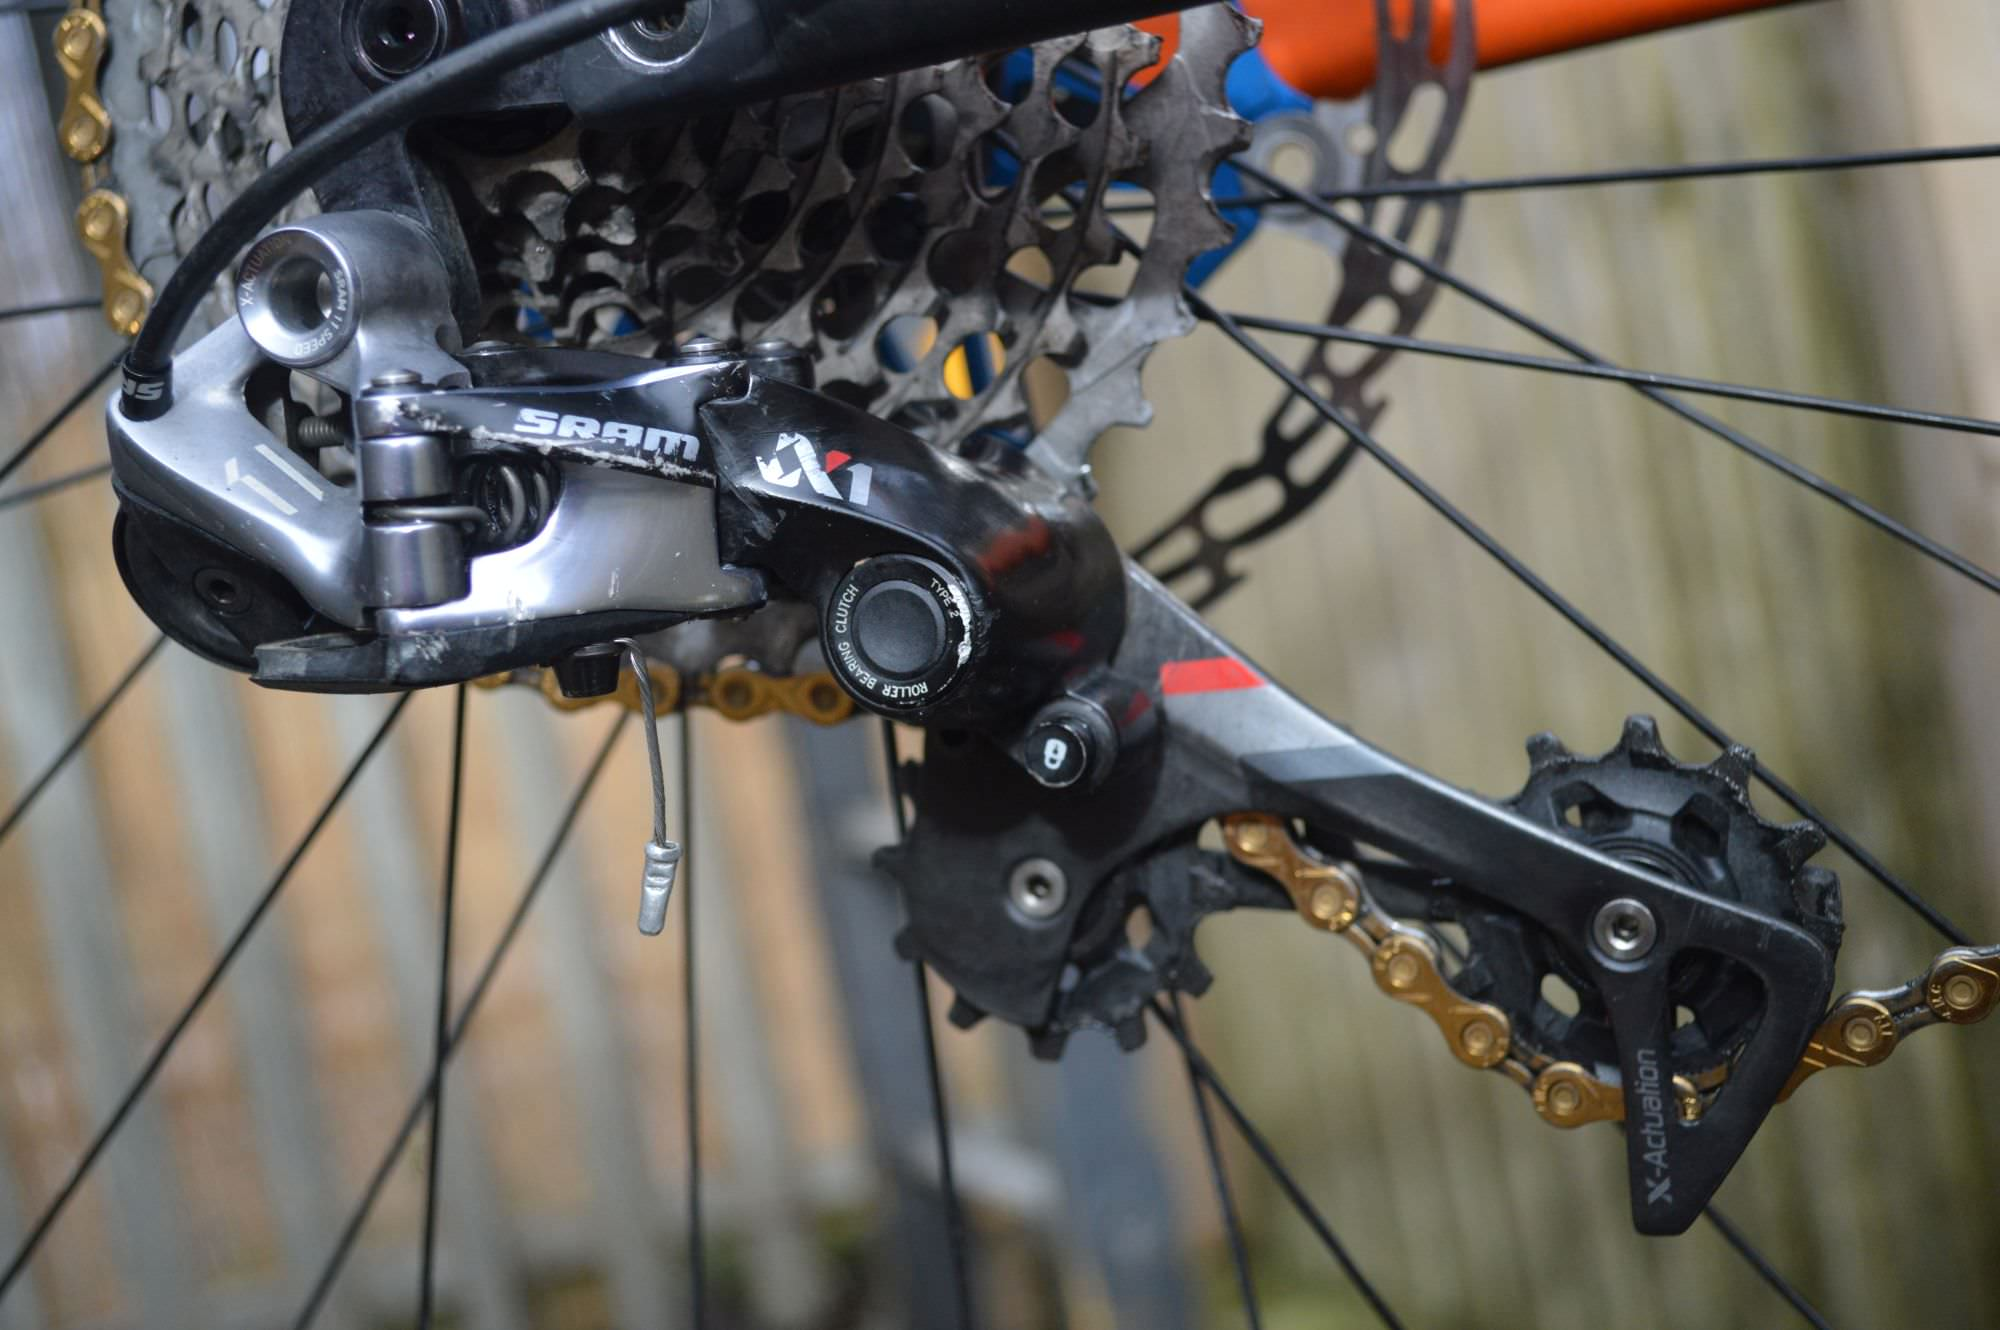 Tested 8 Months Living And Racing With Sram Xx1 Rear Derailleur Diagram After Of Pure Abuse The Still Works A Treat